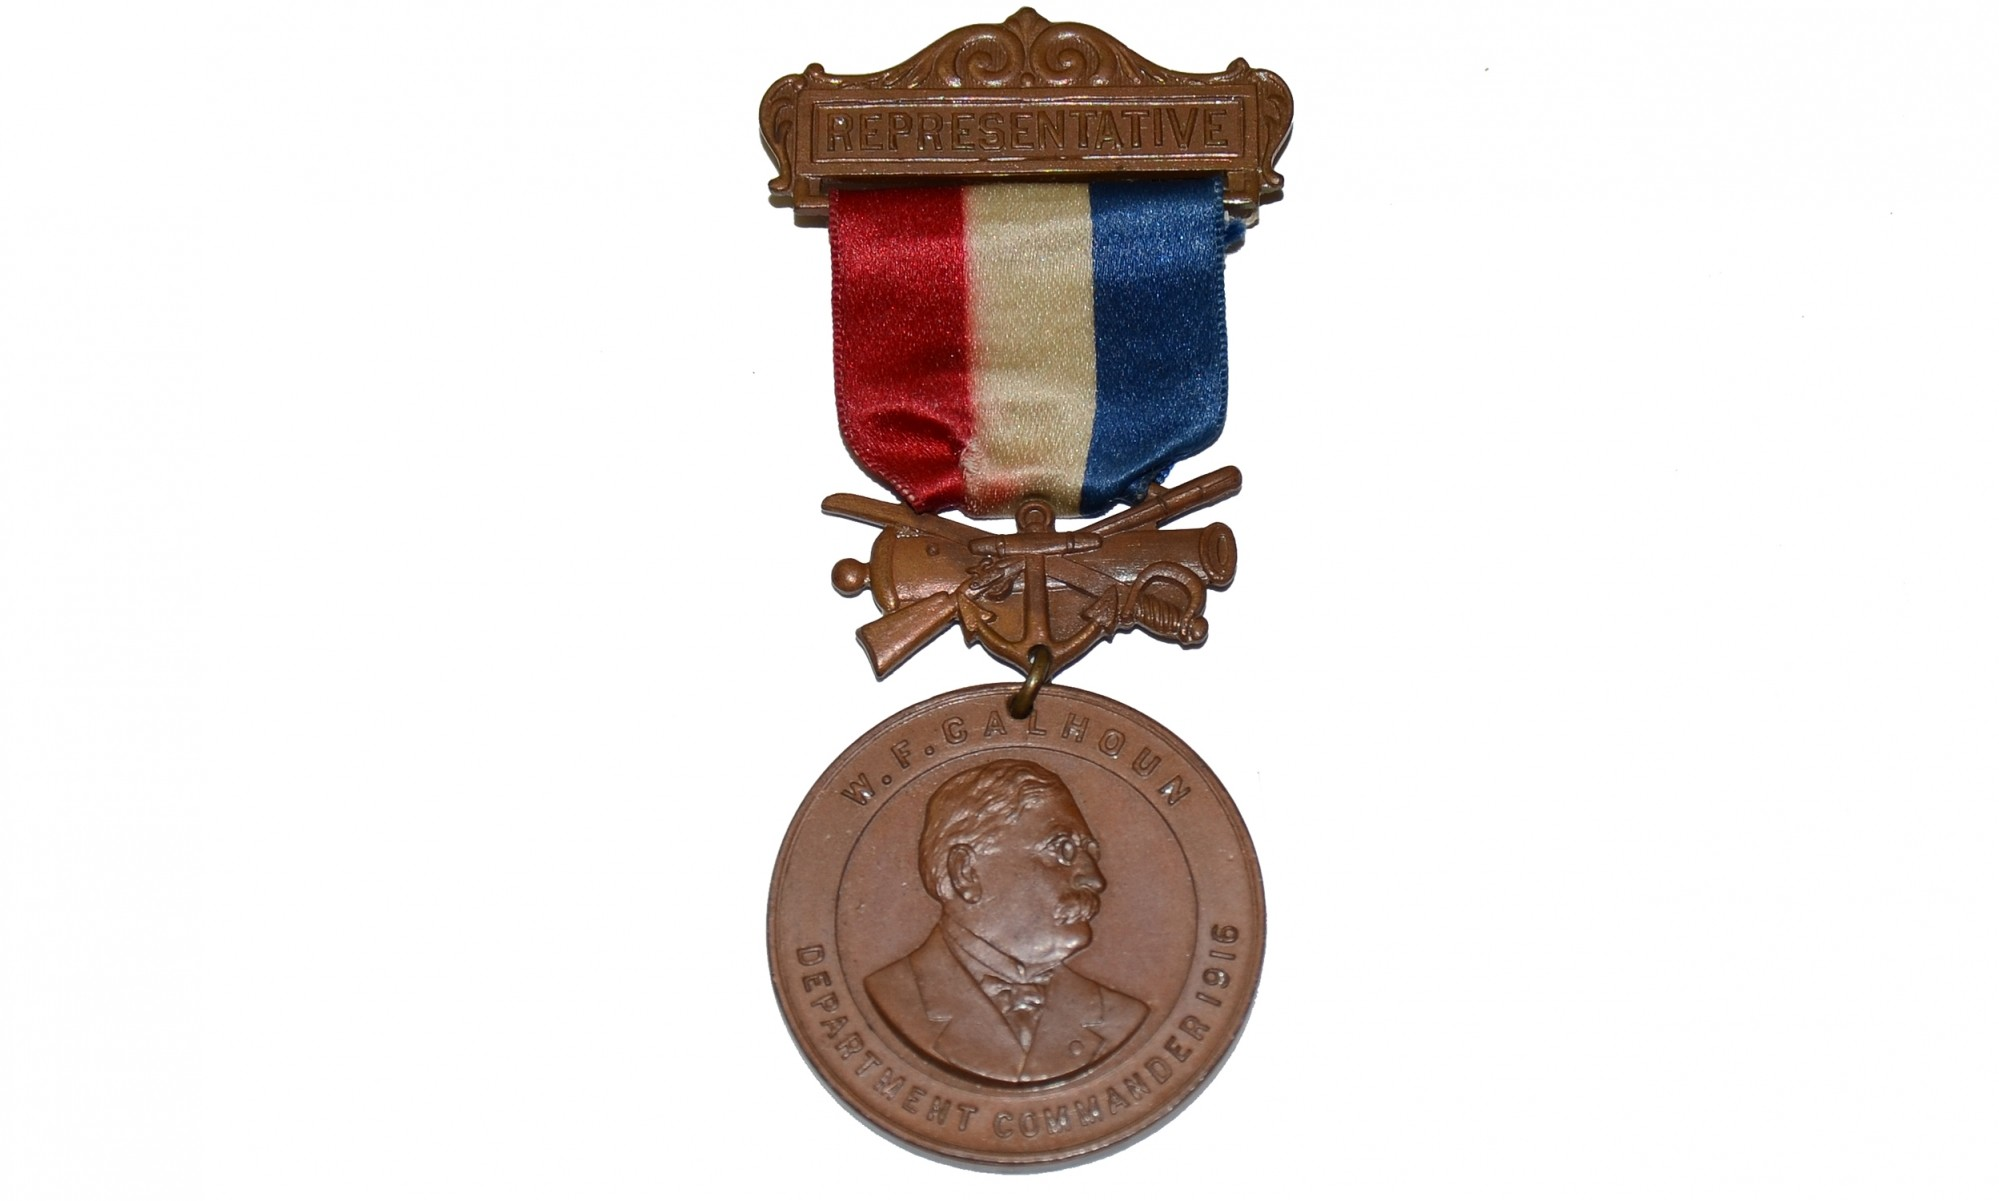 1917 DEPARTMENT OF ILLINOIS GAR MEDAL